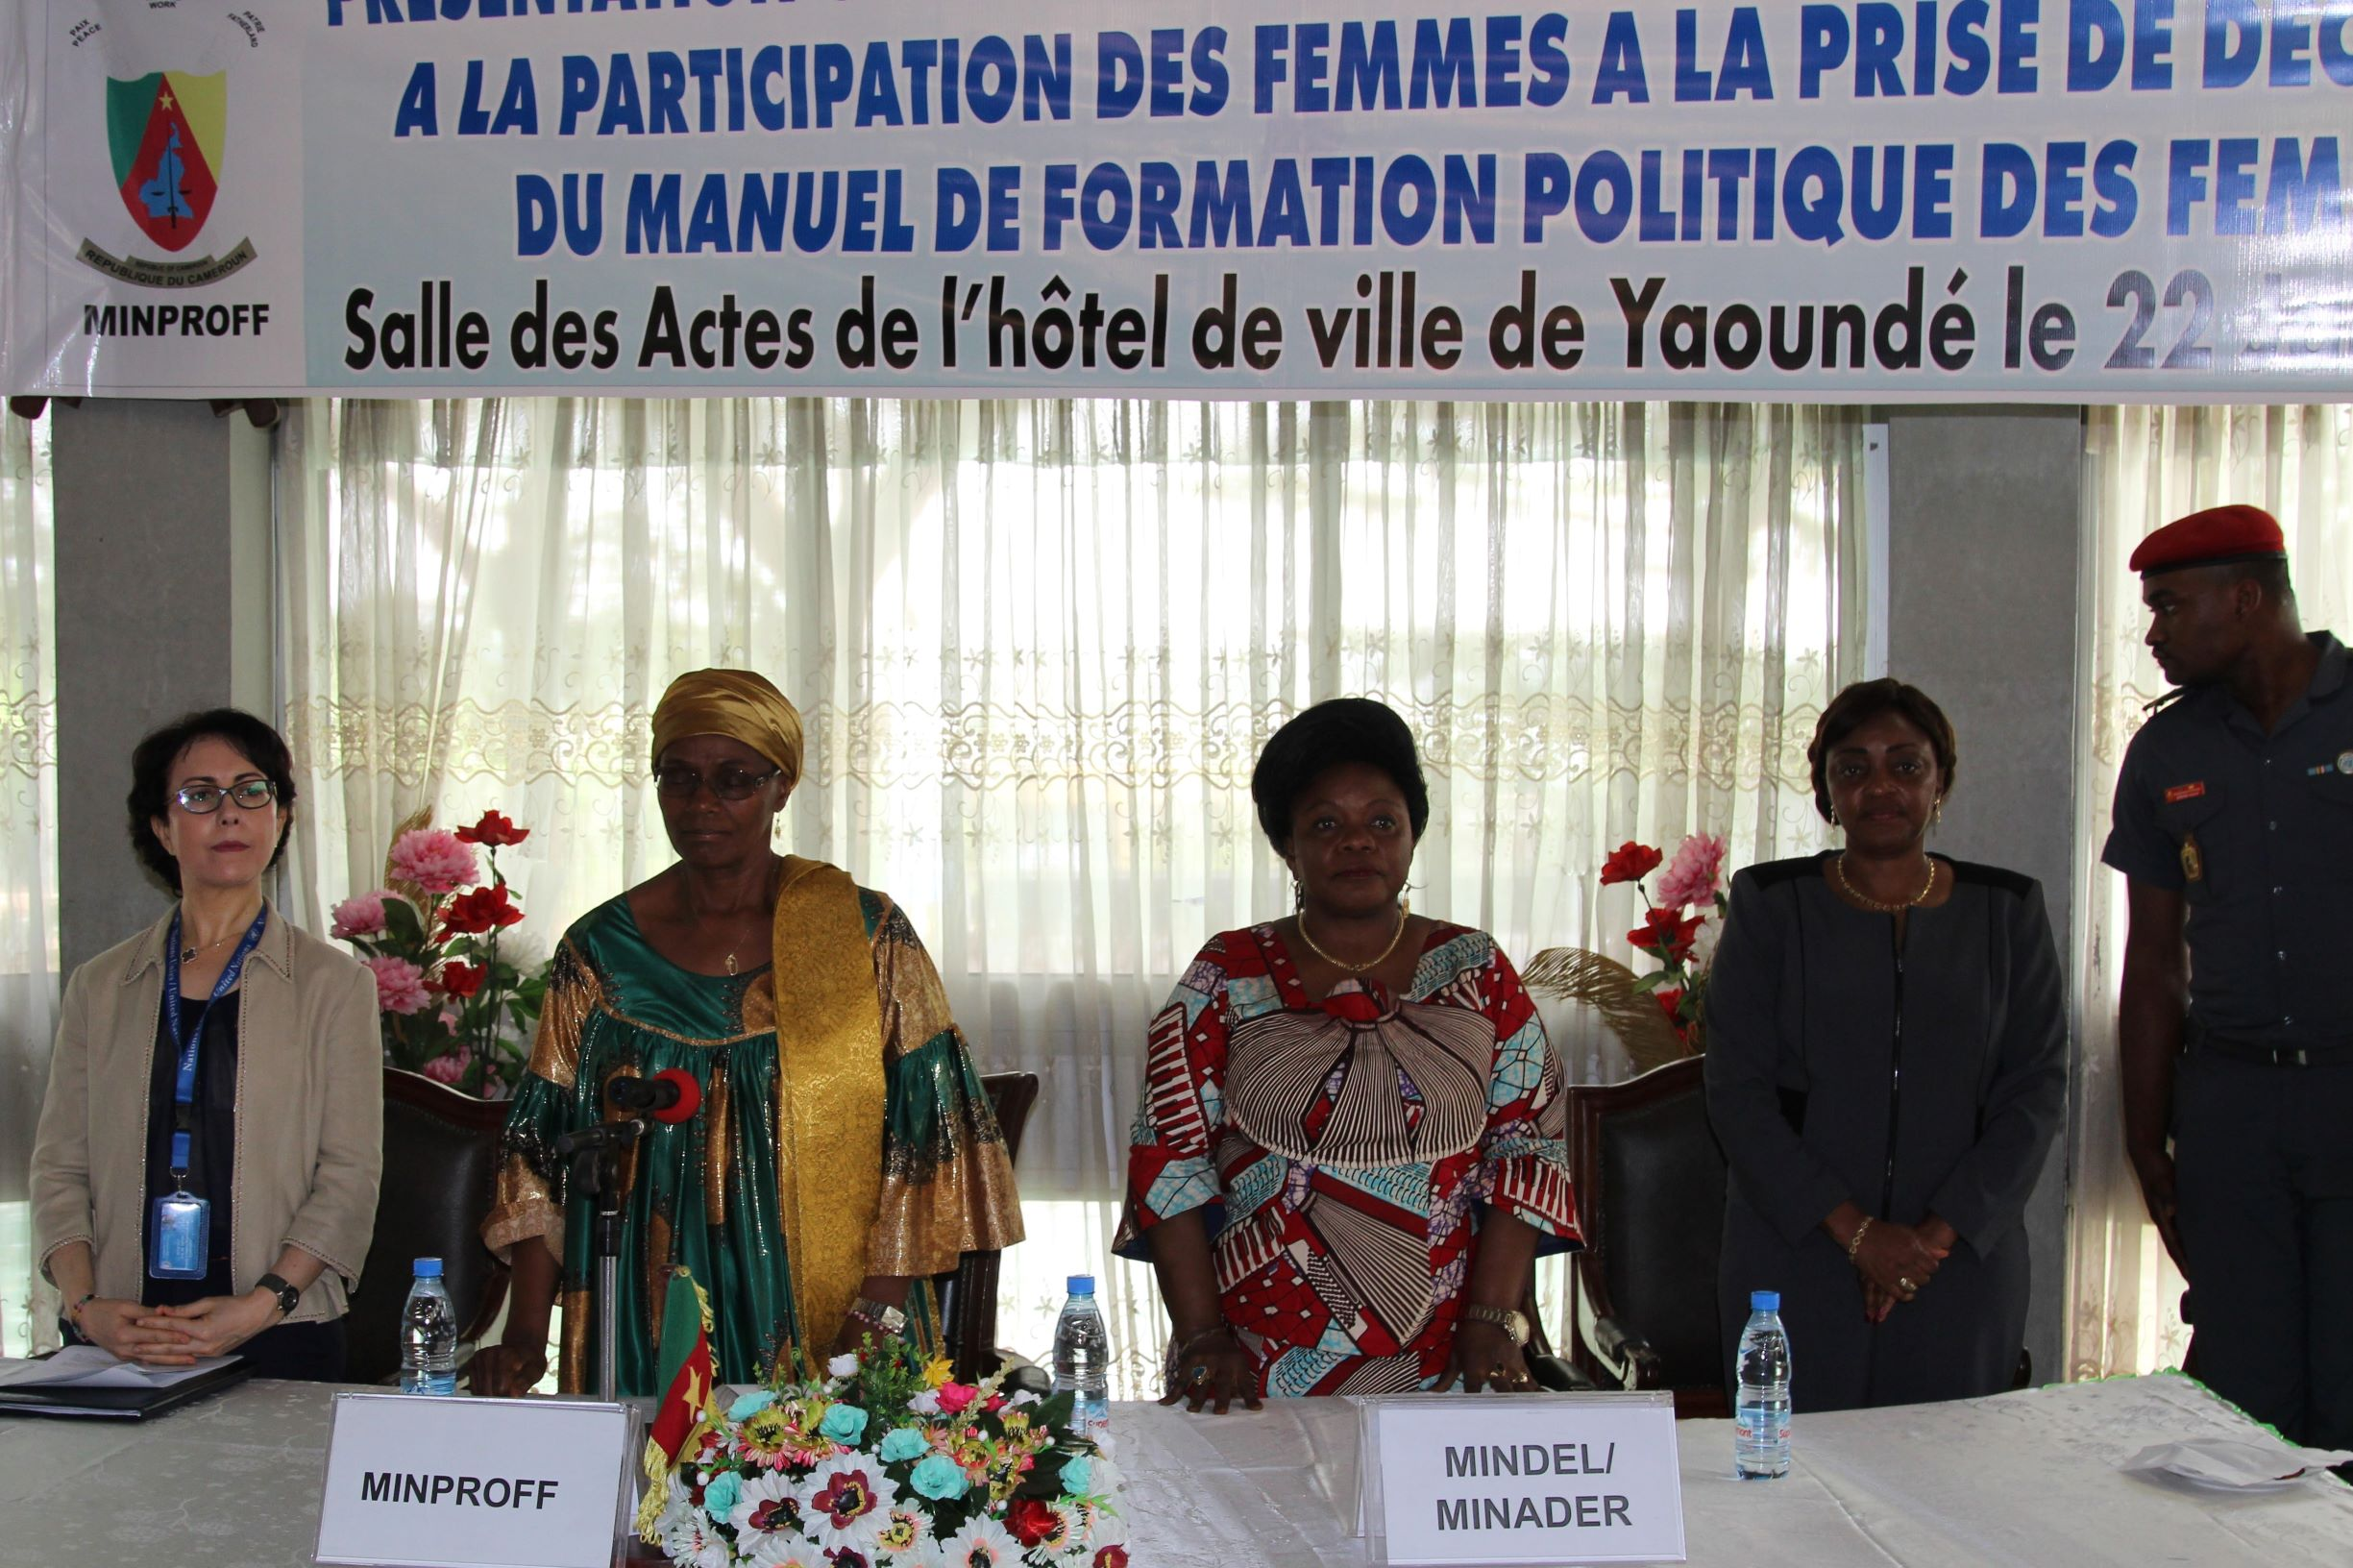 Officials presiding at the ceremony (from left to right) Hind Jalal, UN Women Deputy Representative; Mininster Abena Ondoa Marie-Therese, MINPROFF; Clementine Ananga Messina, Minister Delegate MINADER; and Angouing Francoise, Inspector General at MINPROFF photo credit: Teclaire Same, UN Women